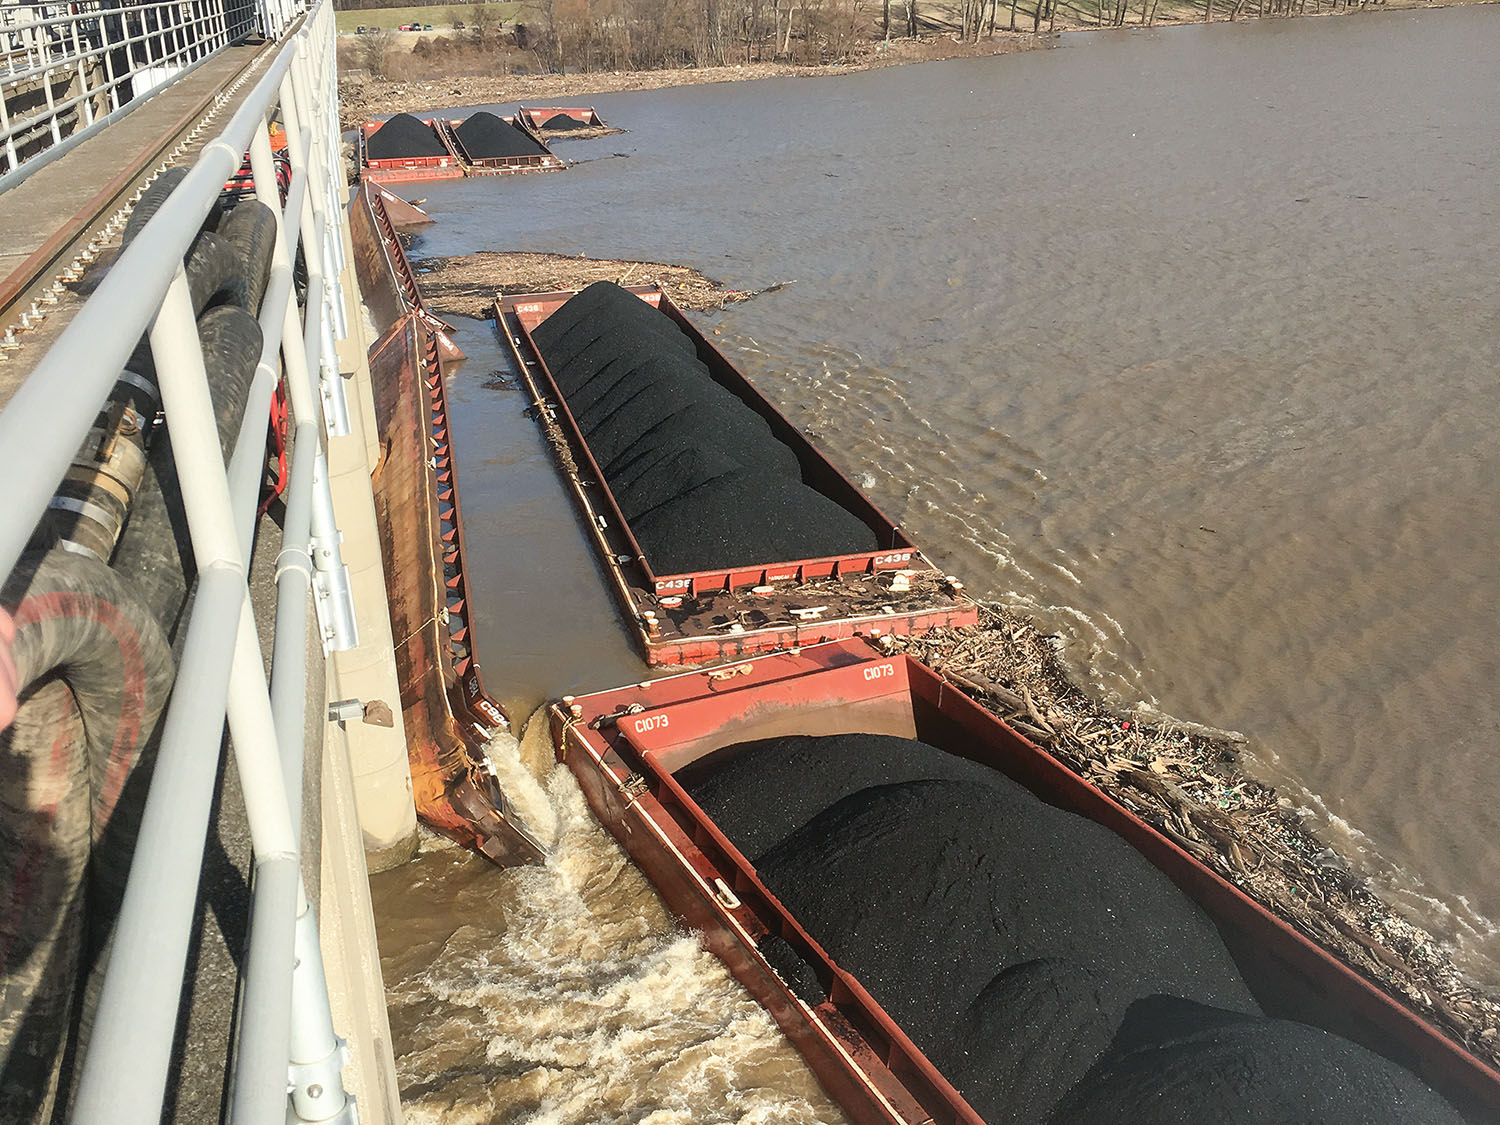 Coast Guard responds to tug and barge accident on the Ohio River in Louisville, Kentucky